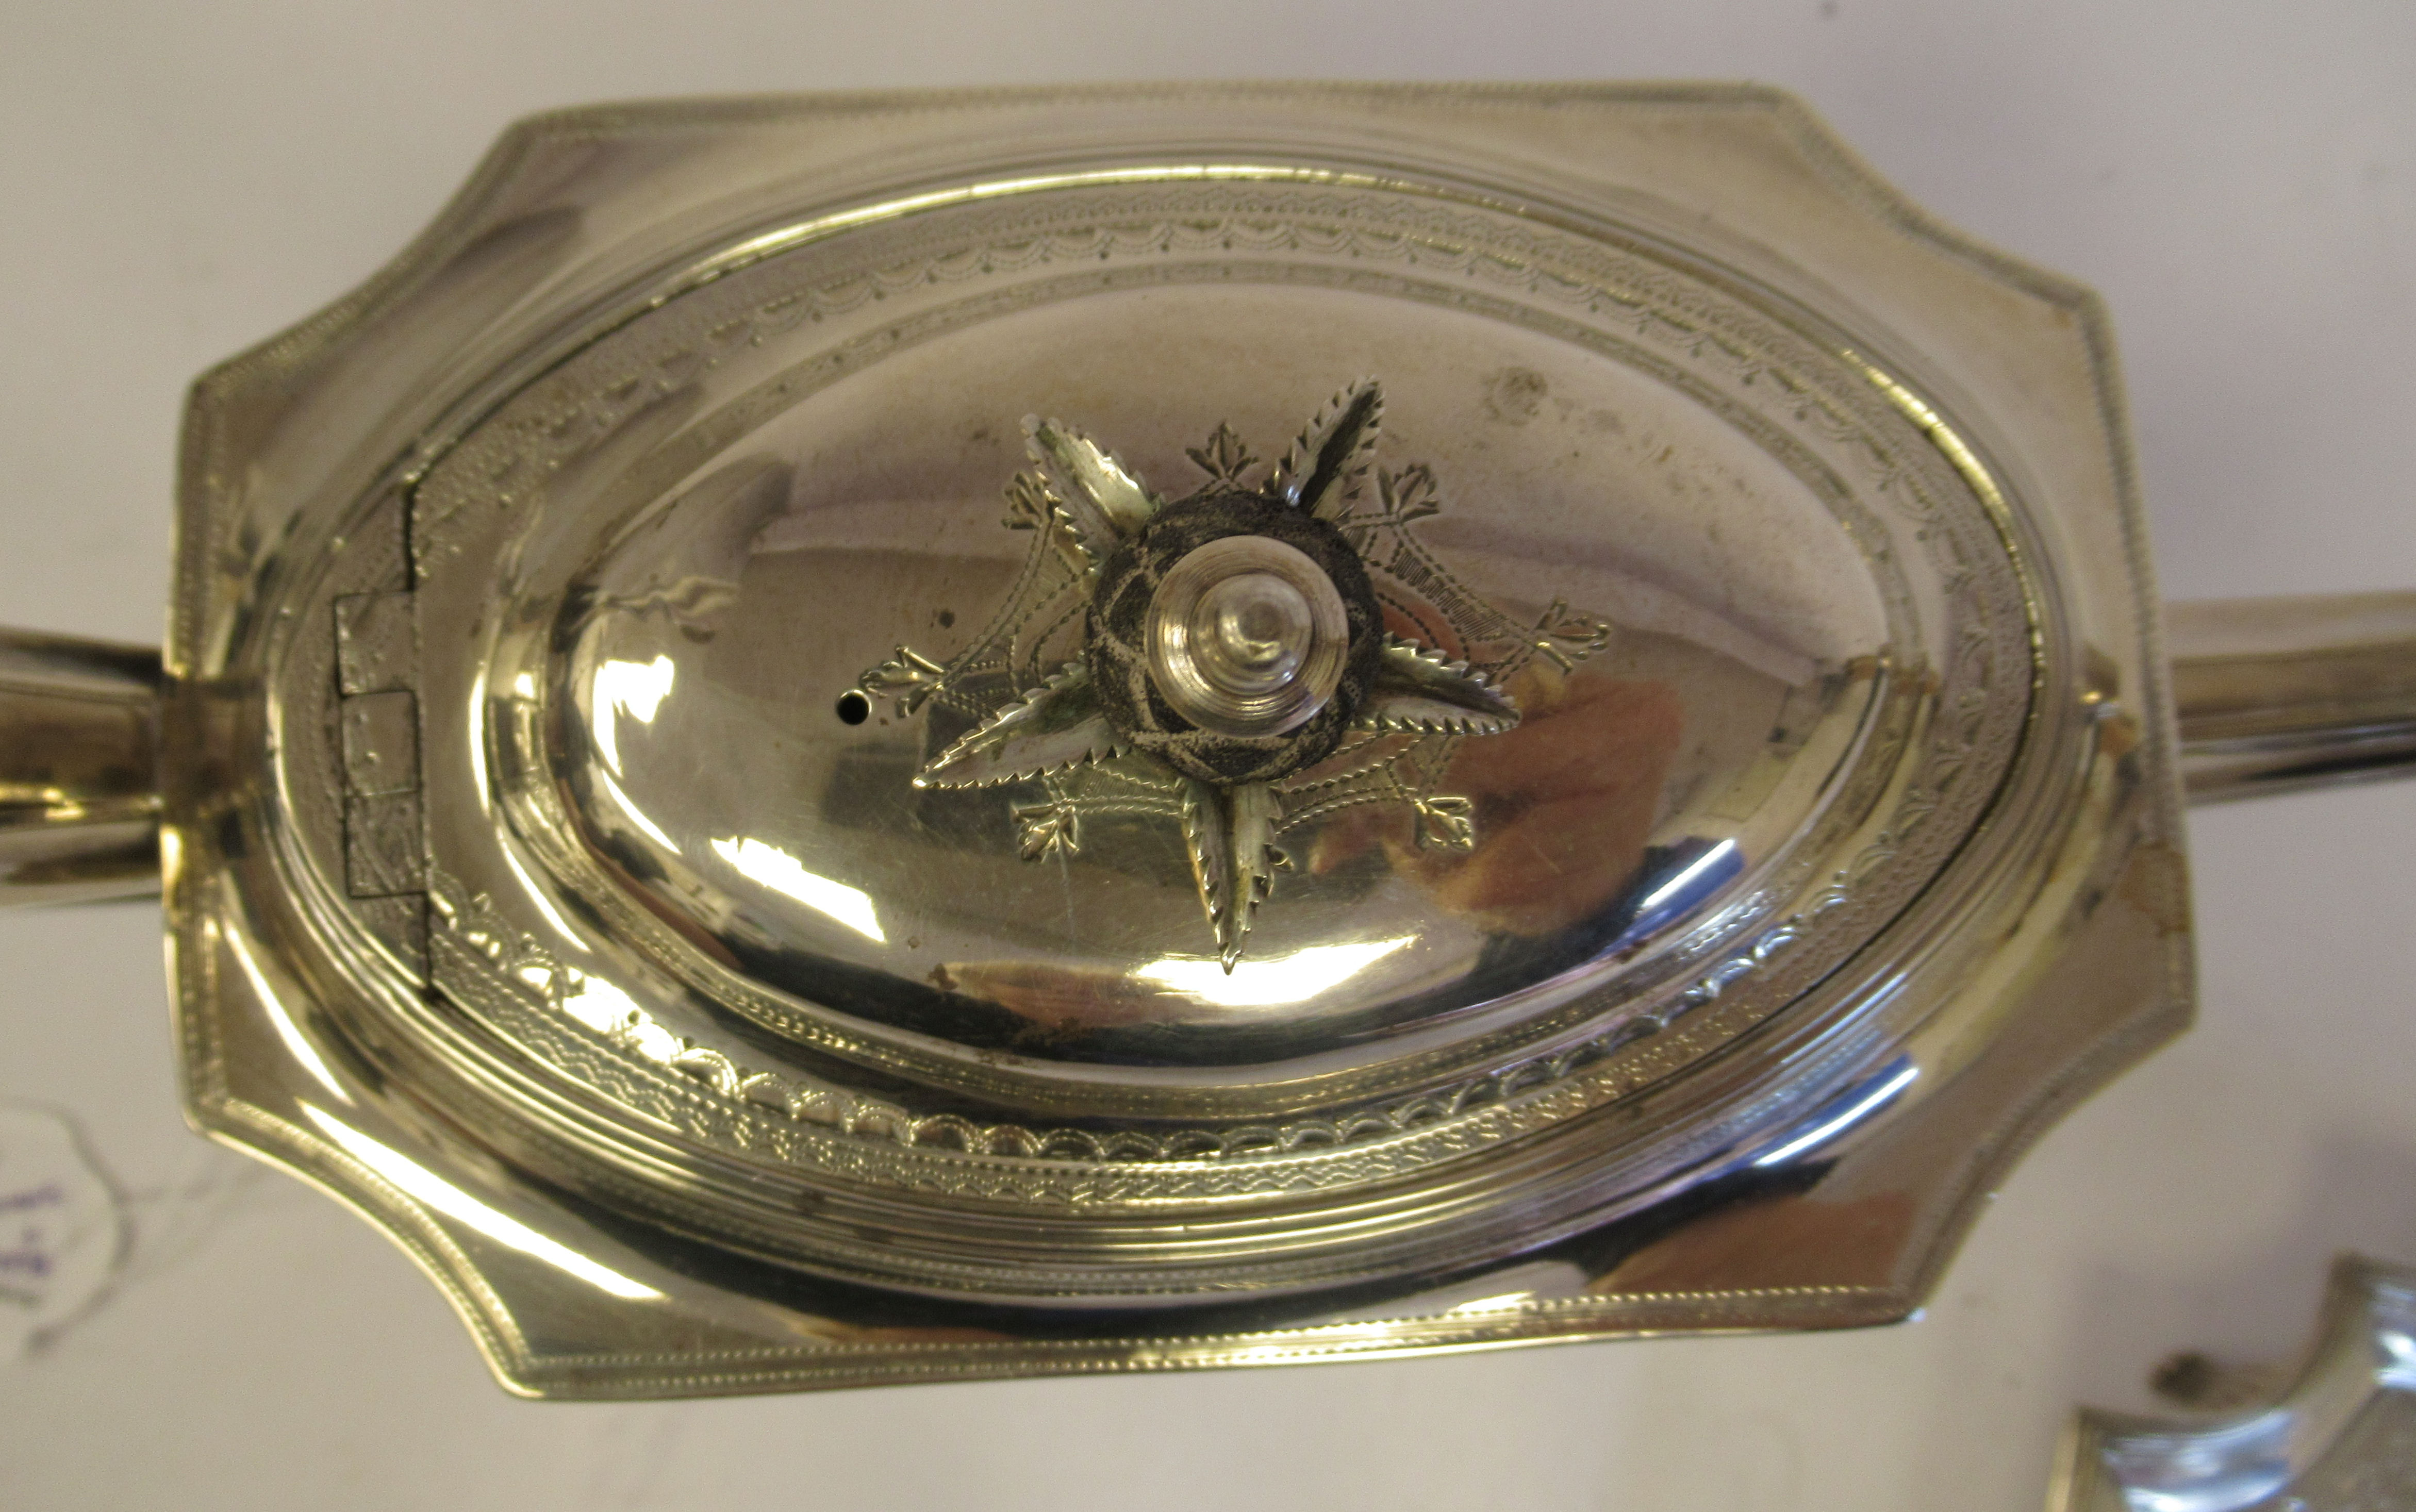 A George III silver teapot of straight sided, incurved box design, having an angled straight, - Image 4 of 9